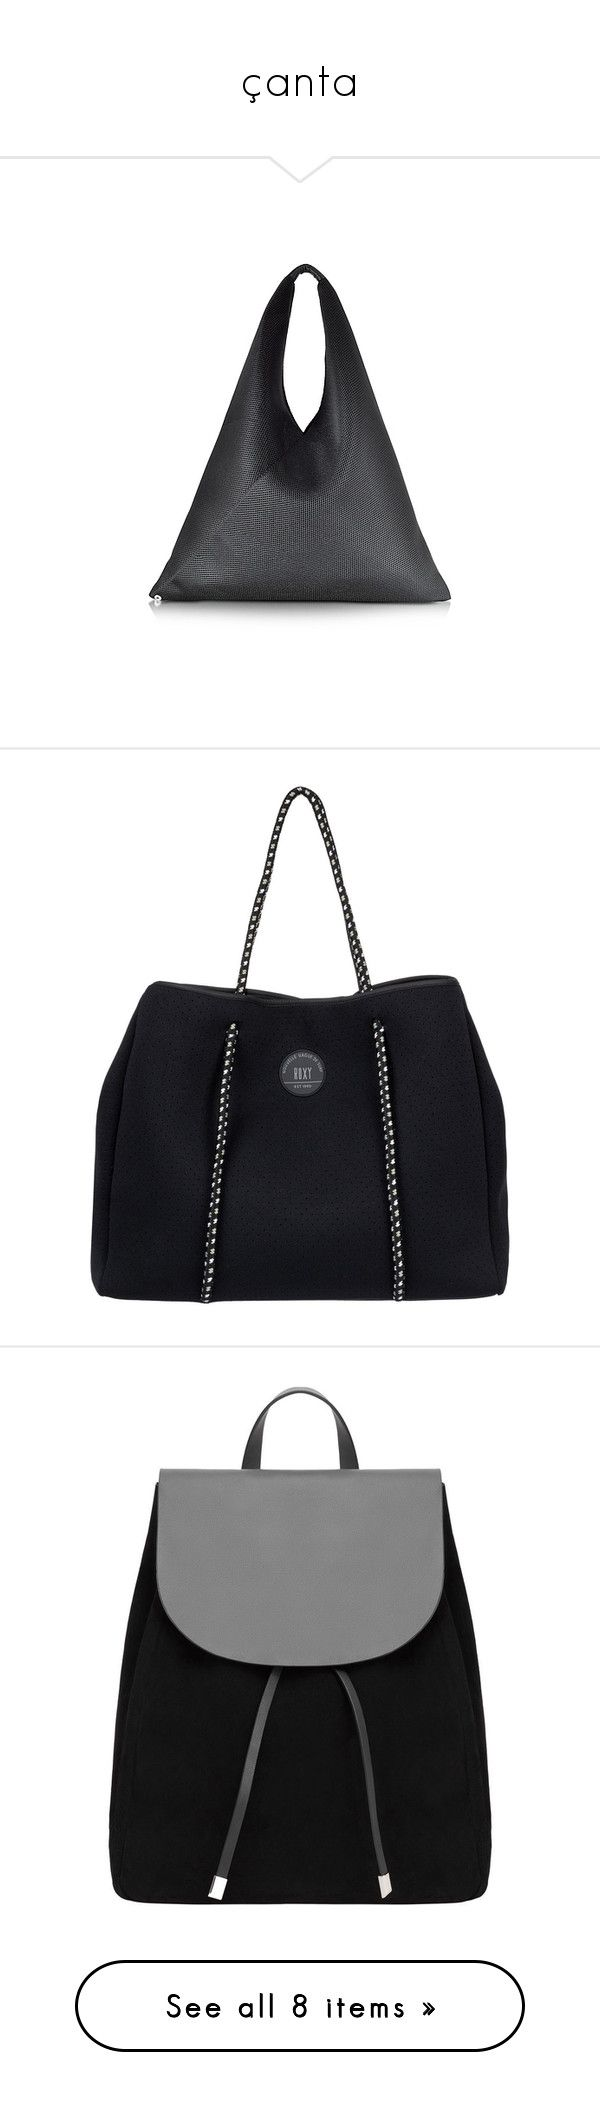 """""""çanta"""" by busranurokur ❤ liked on Polyvore featuring bags, handbags, tote bags, black, beach tote, mesh beach tote bag, handbag purse, perforated tote, handbags totes and neoprene totes"""